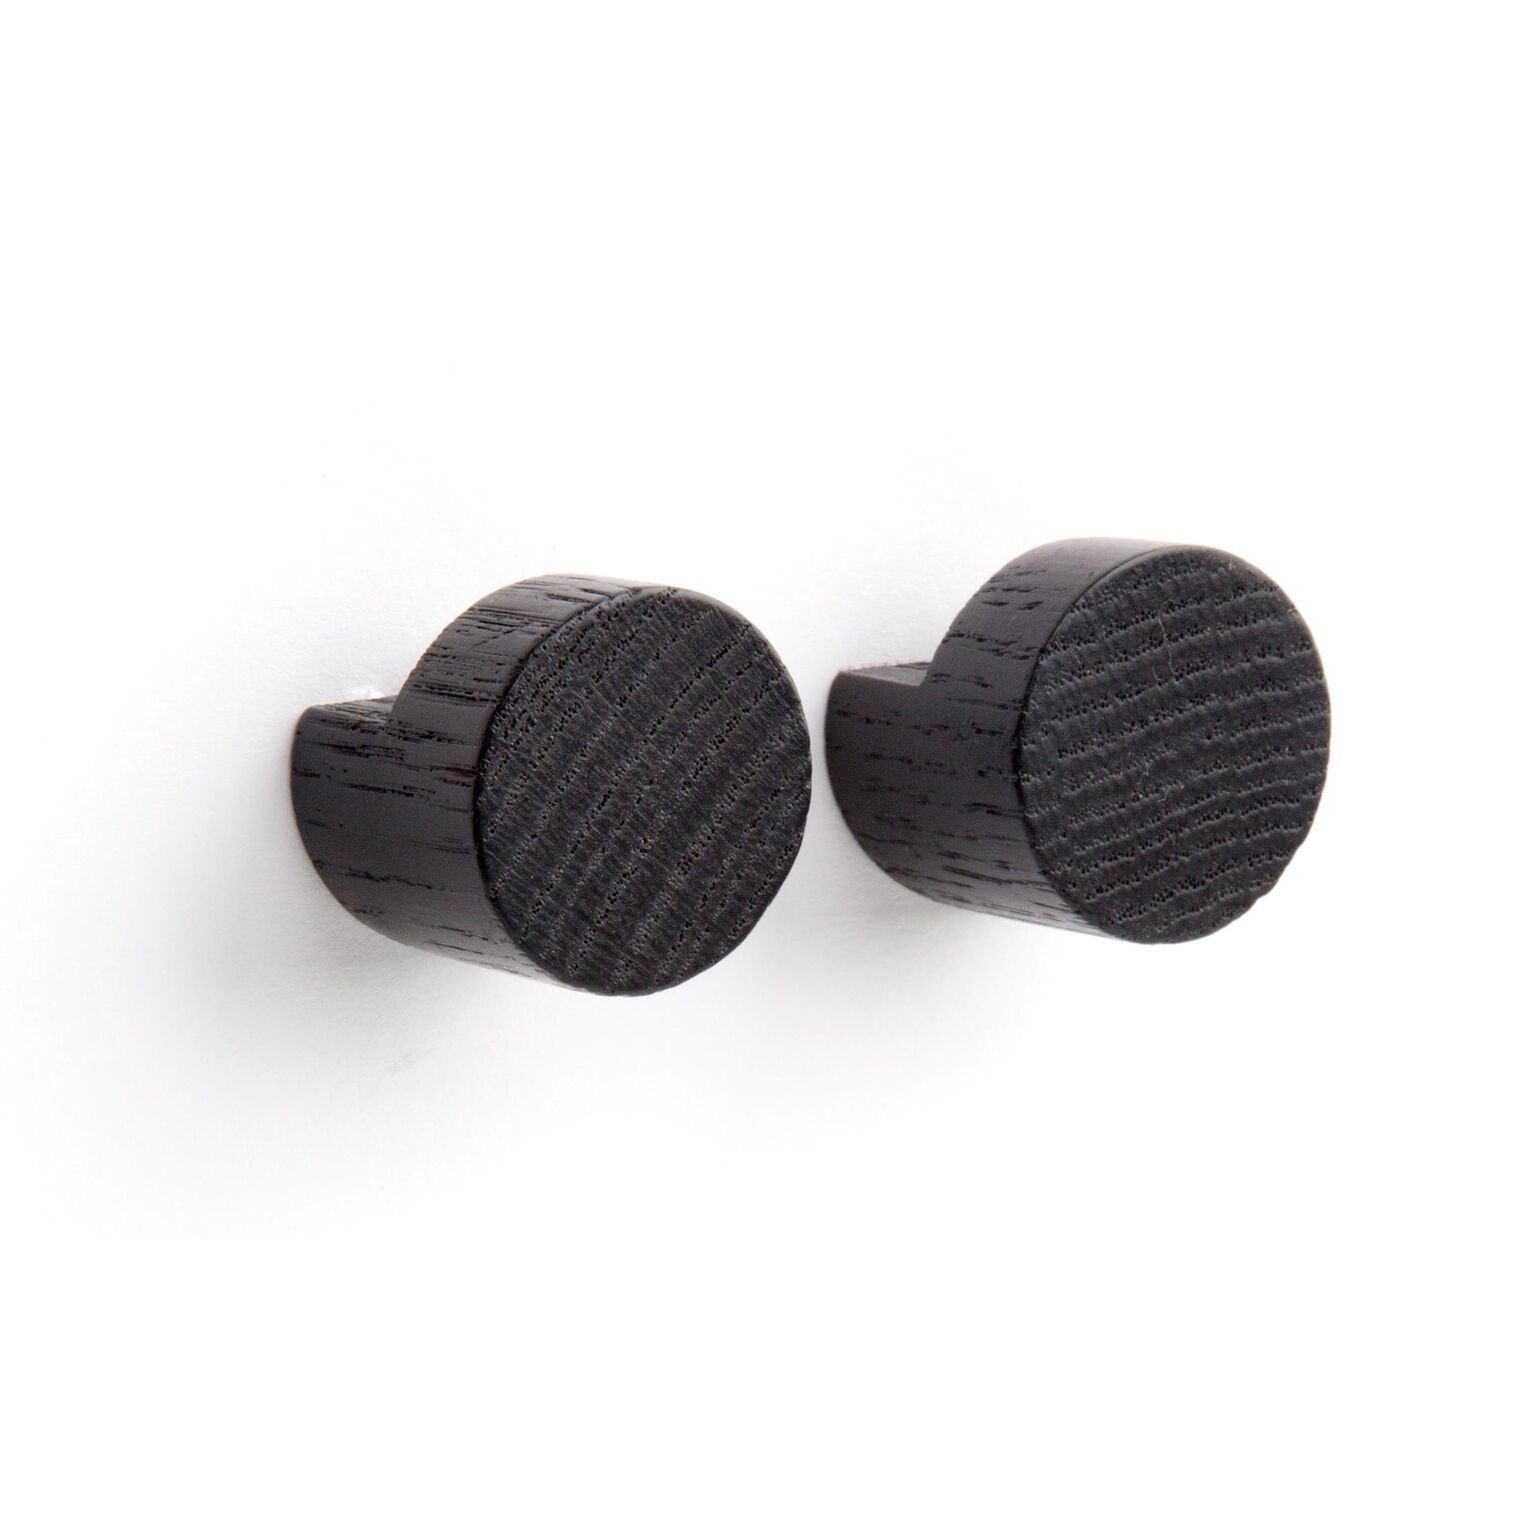 By Wirth - Wood Knot 2 pack - Black (WKS 066)